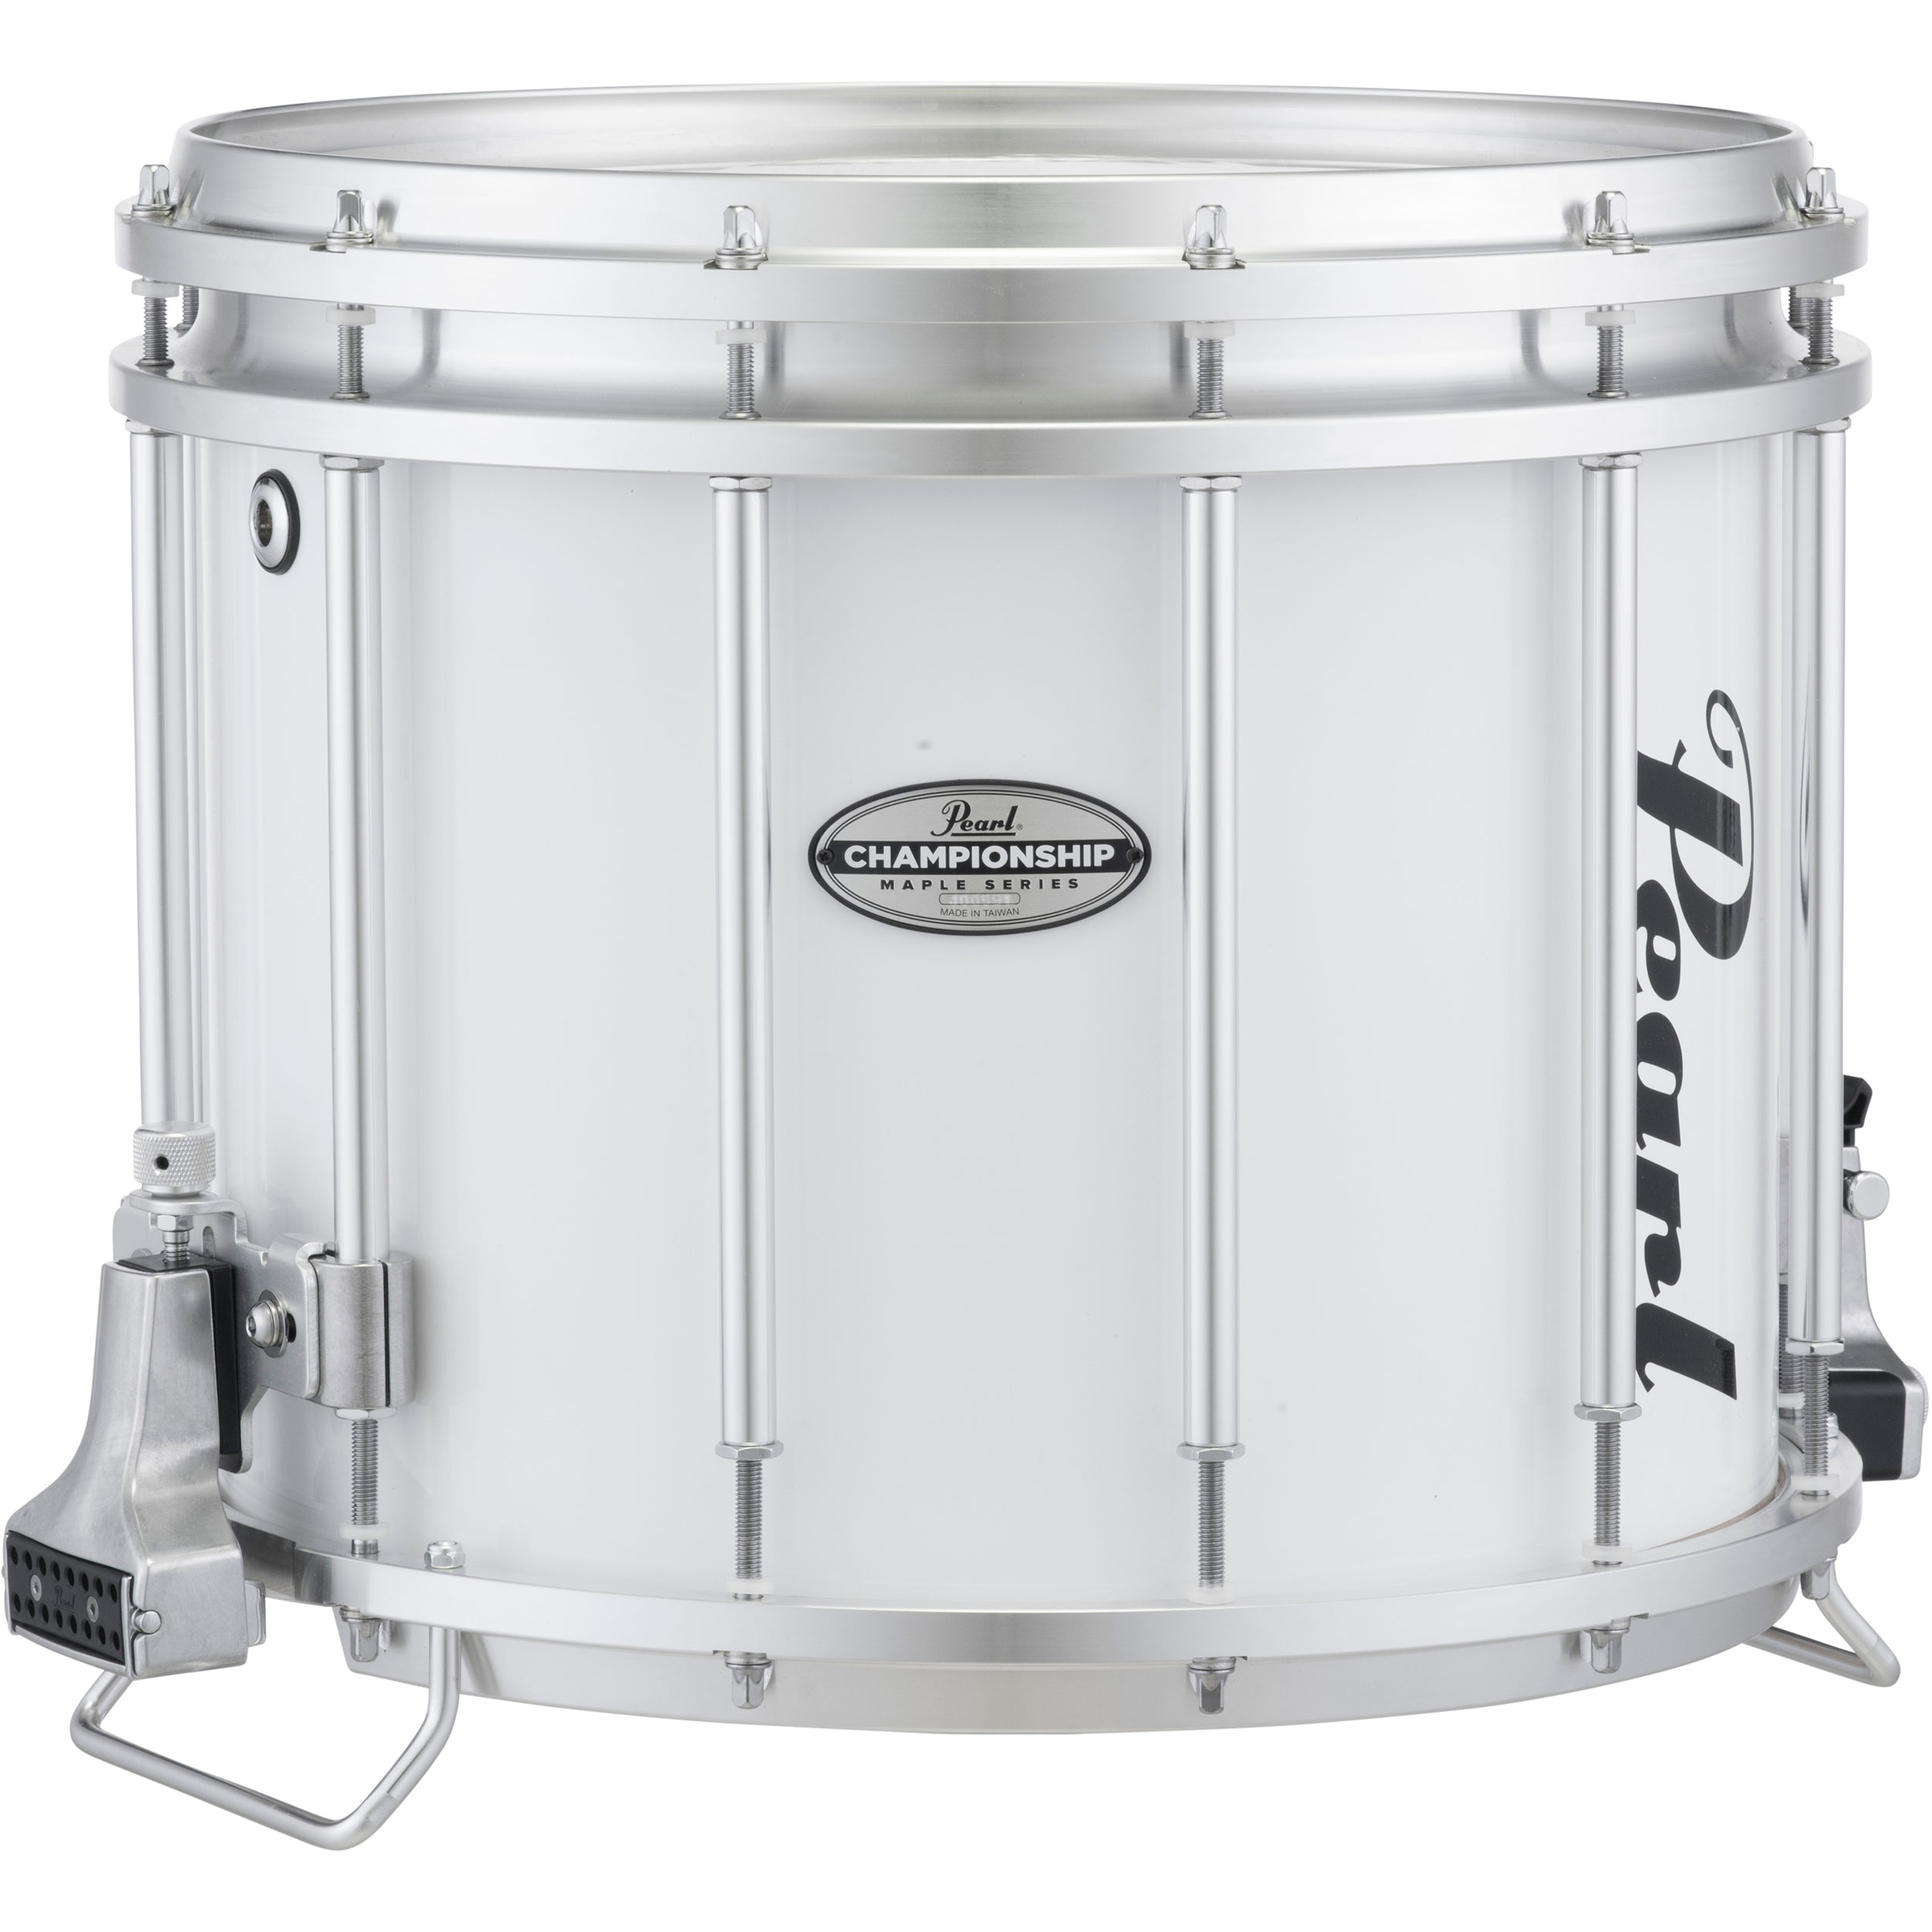 "Pearl 14"" (Diameter) x 12"" (Deep) FFXM Championship Maple Marching Snare Drum in Wrap Finish"